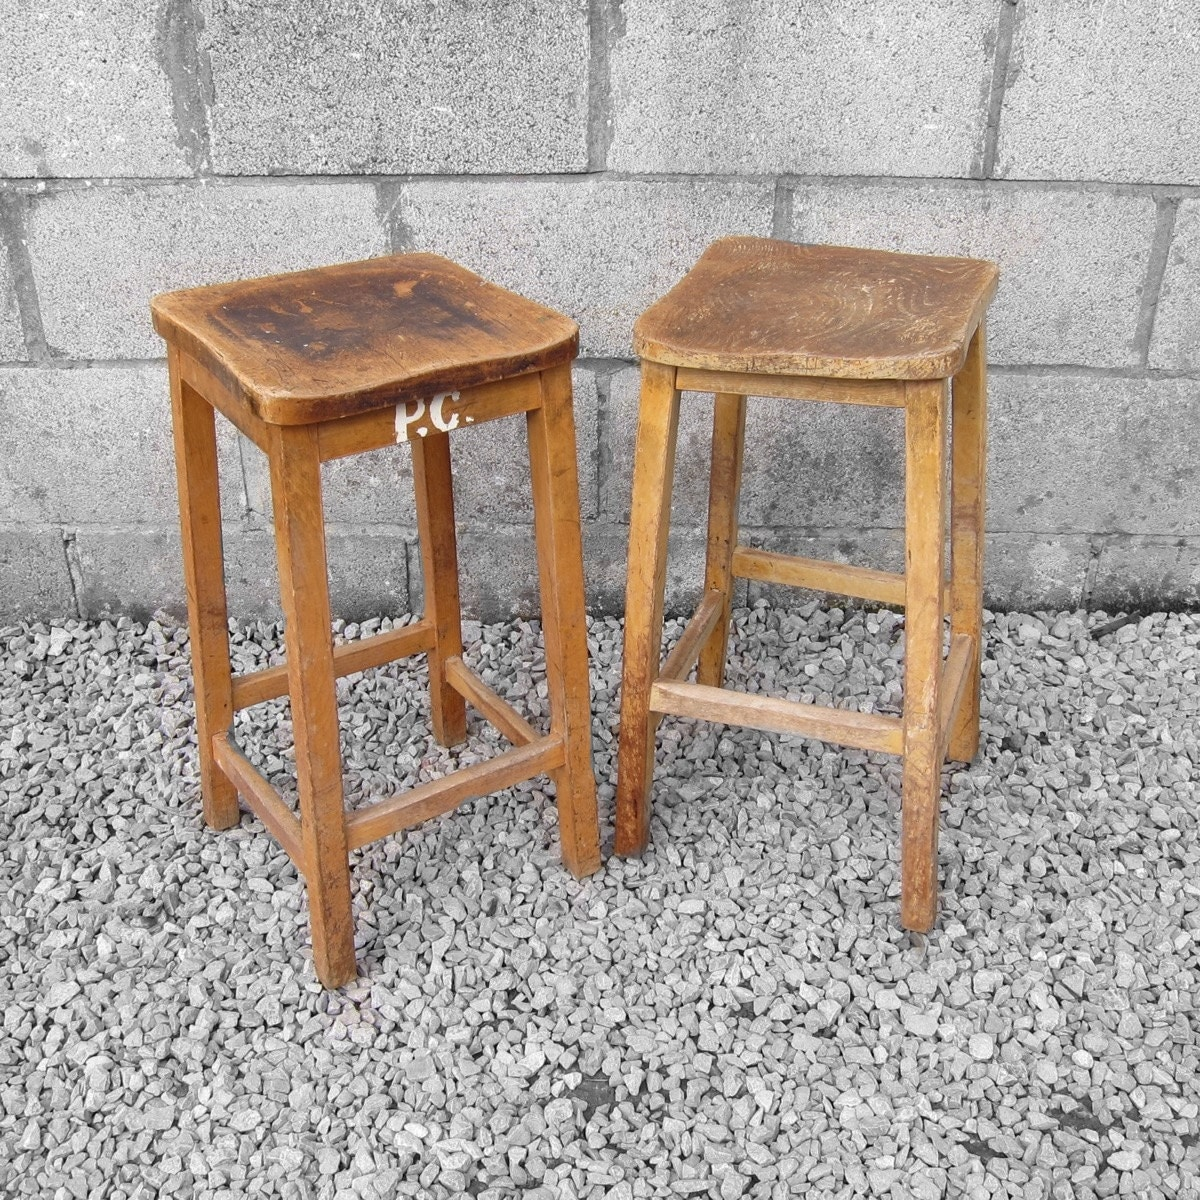 1940s 1950s Wooden Old Vintage School Science Lab Stools Seat